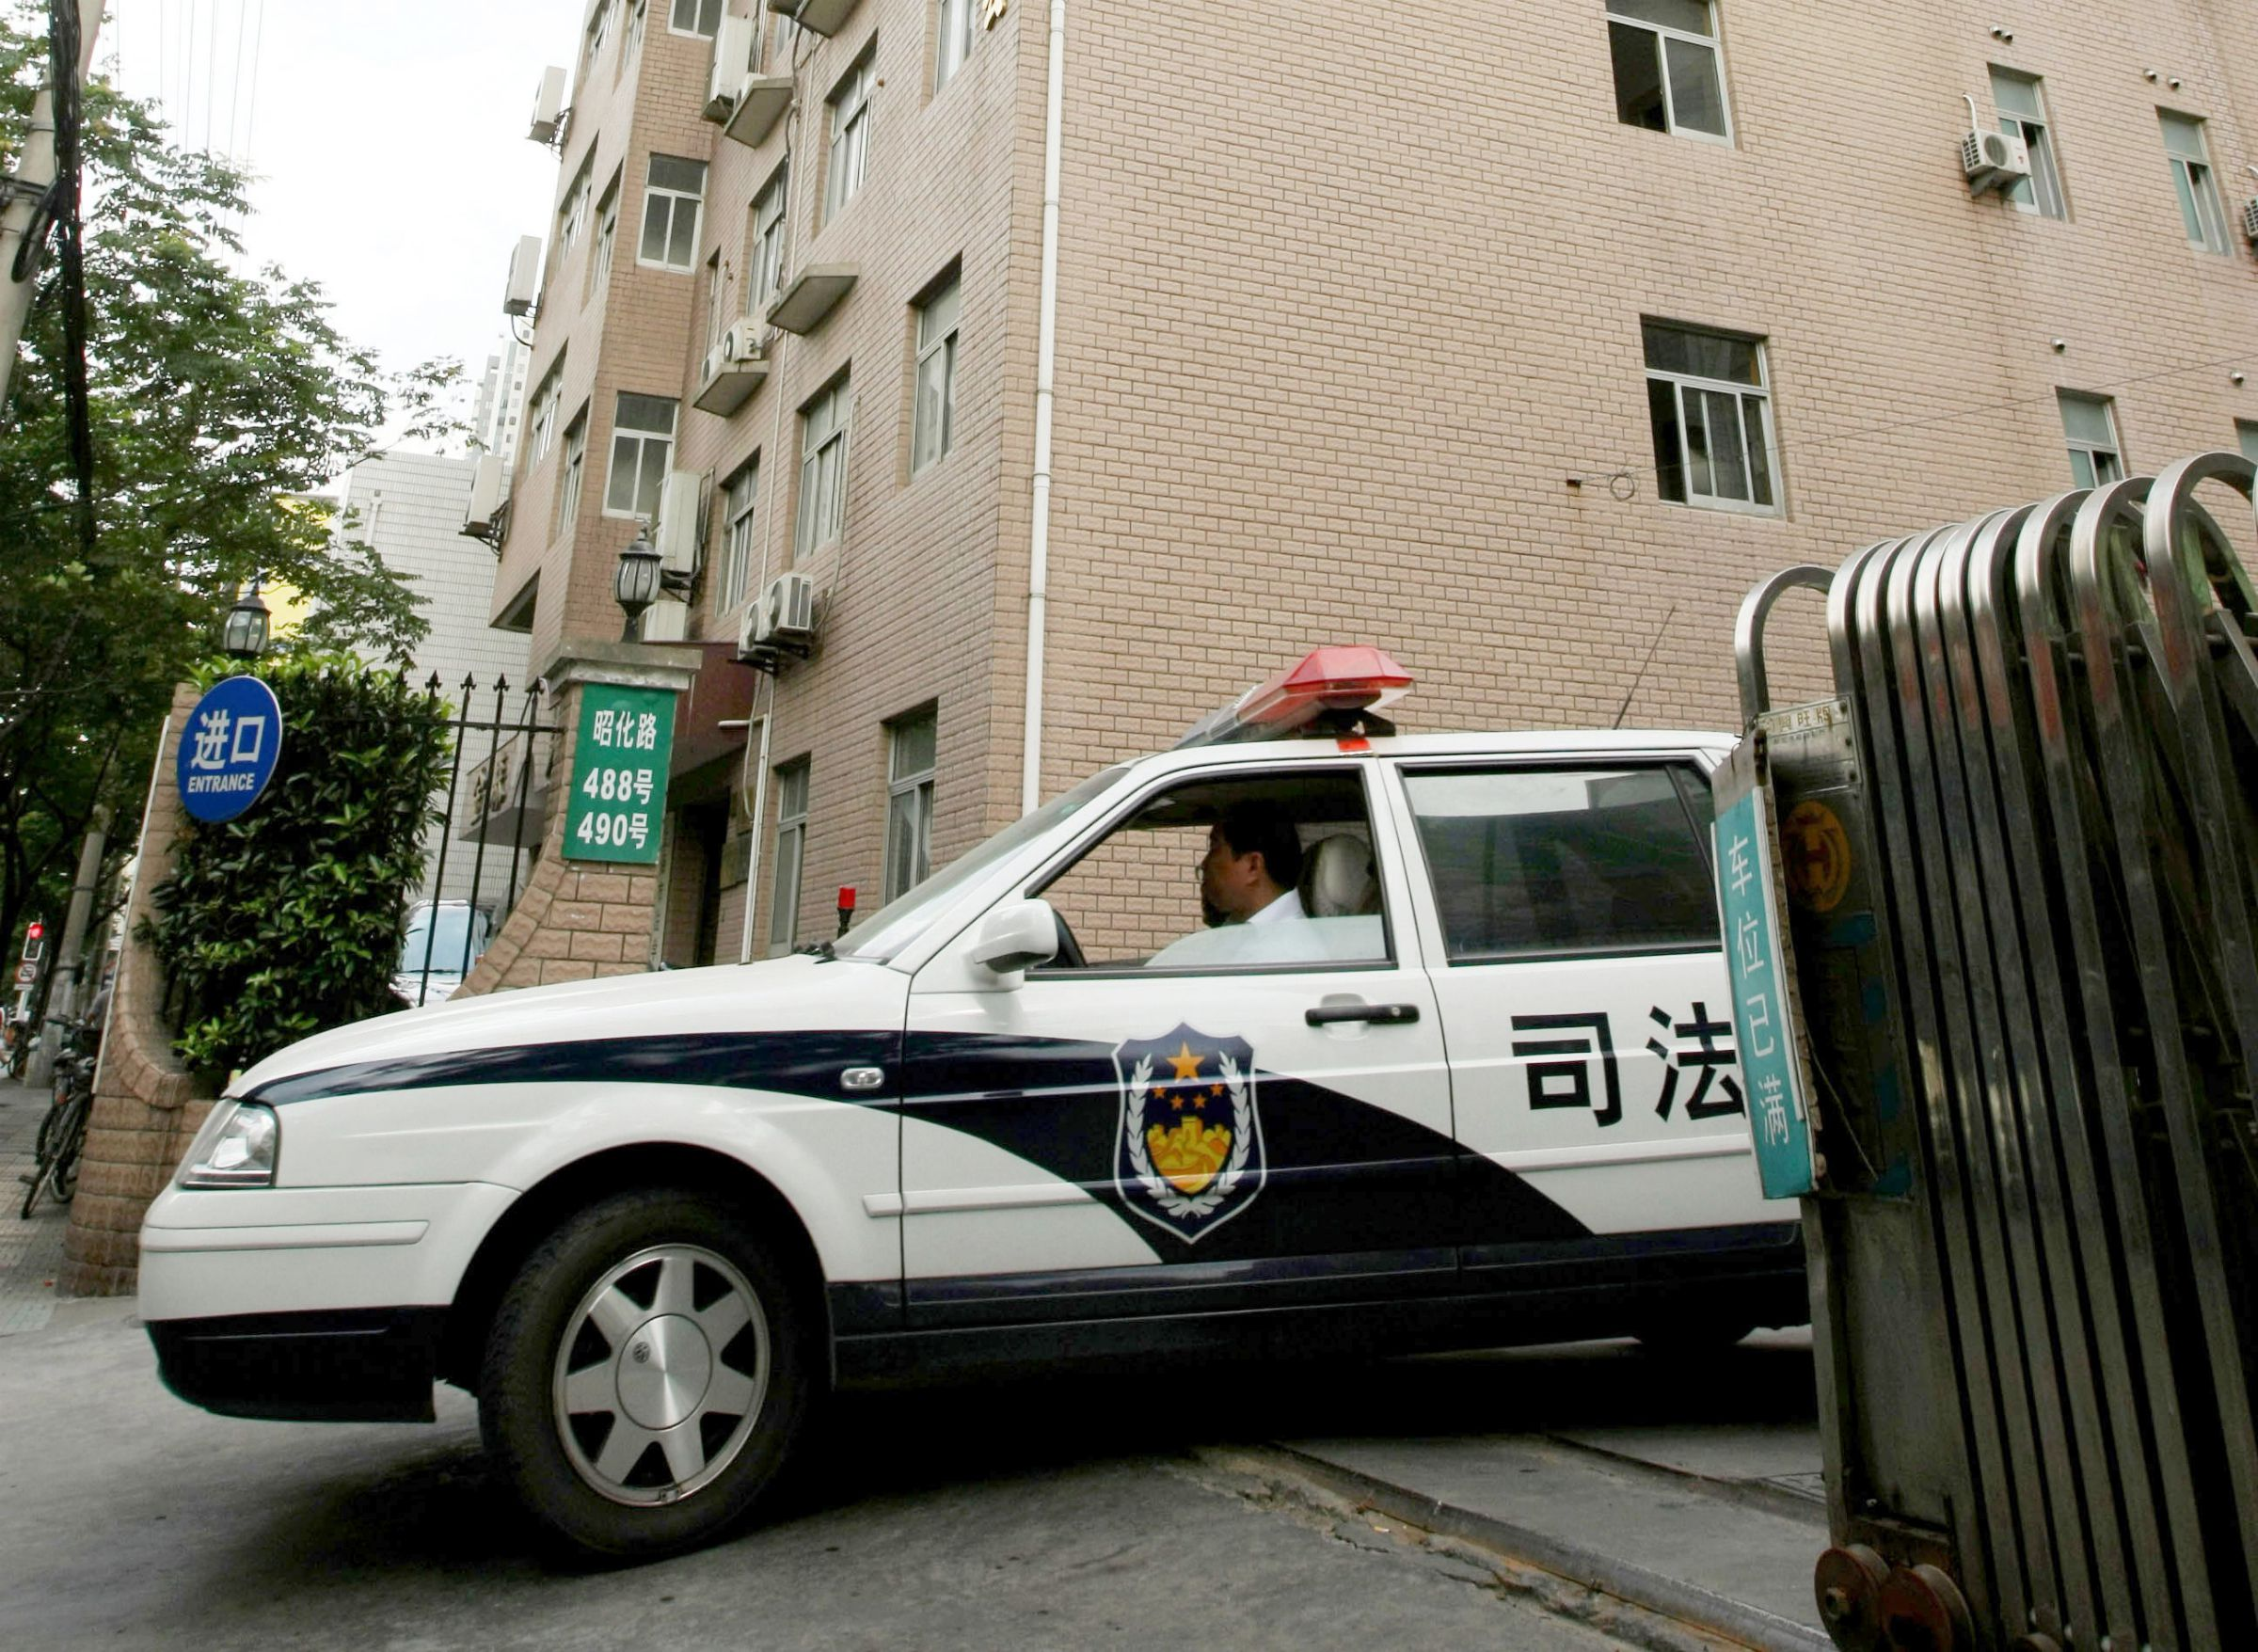 A judicial affair office car drives out at an office-apartment building where a young Canadian model Diana O'Brien was found dead Wednesday, July 9, 2008 in Shanghai, China. An official in the news department of Shanghai's Public Security Bureau said that police got an emergency call early Monday about the death of O'Brien. Police said Wednesday they suspect she was murdered. (AP Photo/Eugene Hoshiko